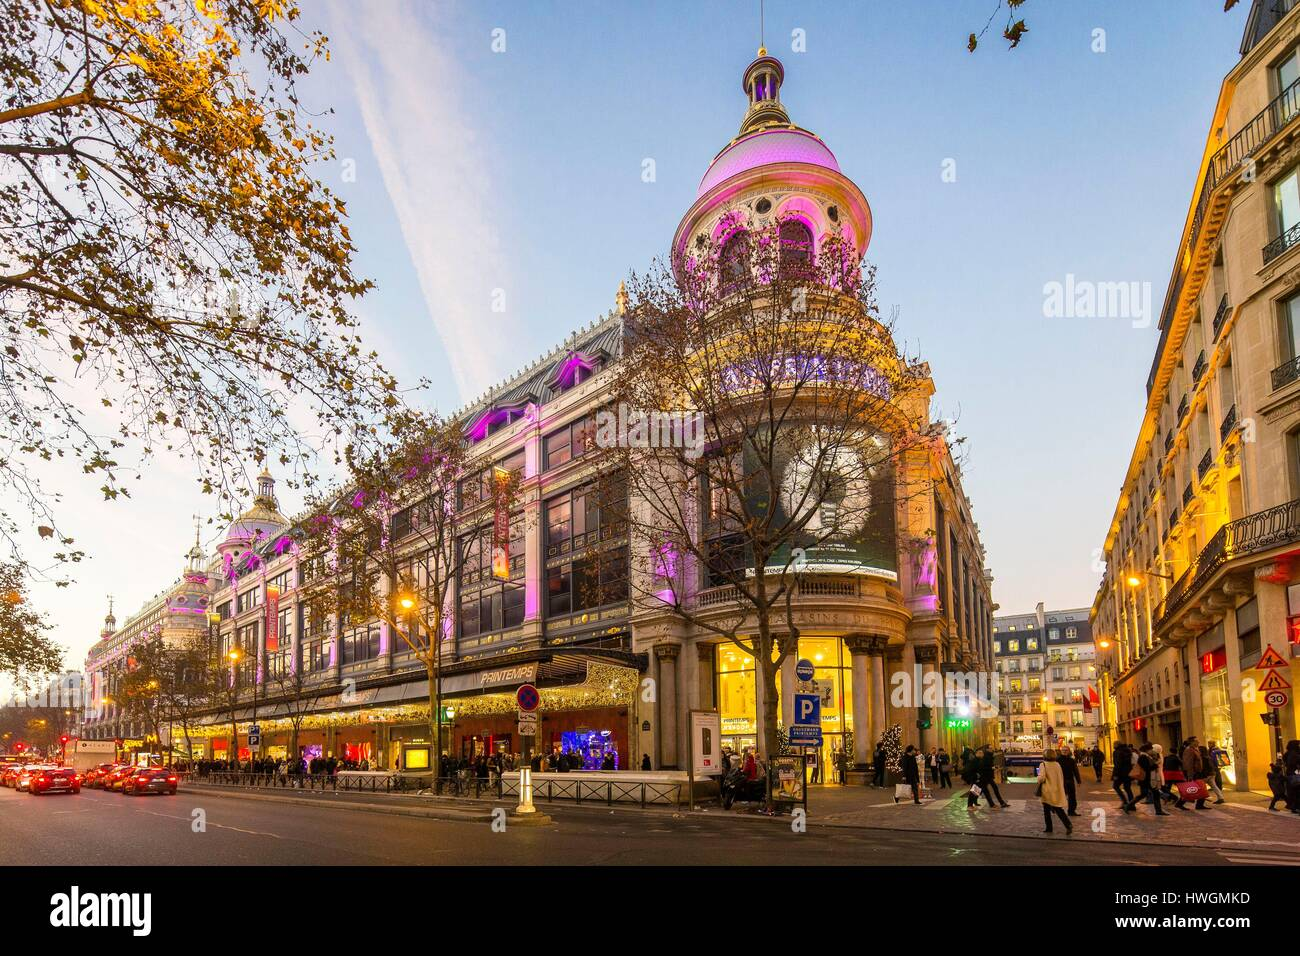 Le Printemps Paris France Paris Boulevard Haussmann And The Printemps Department